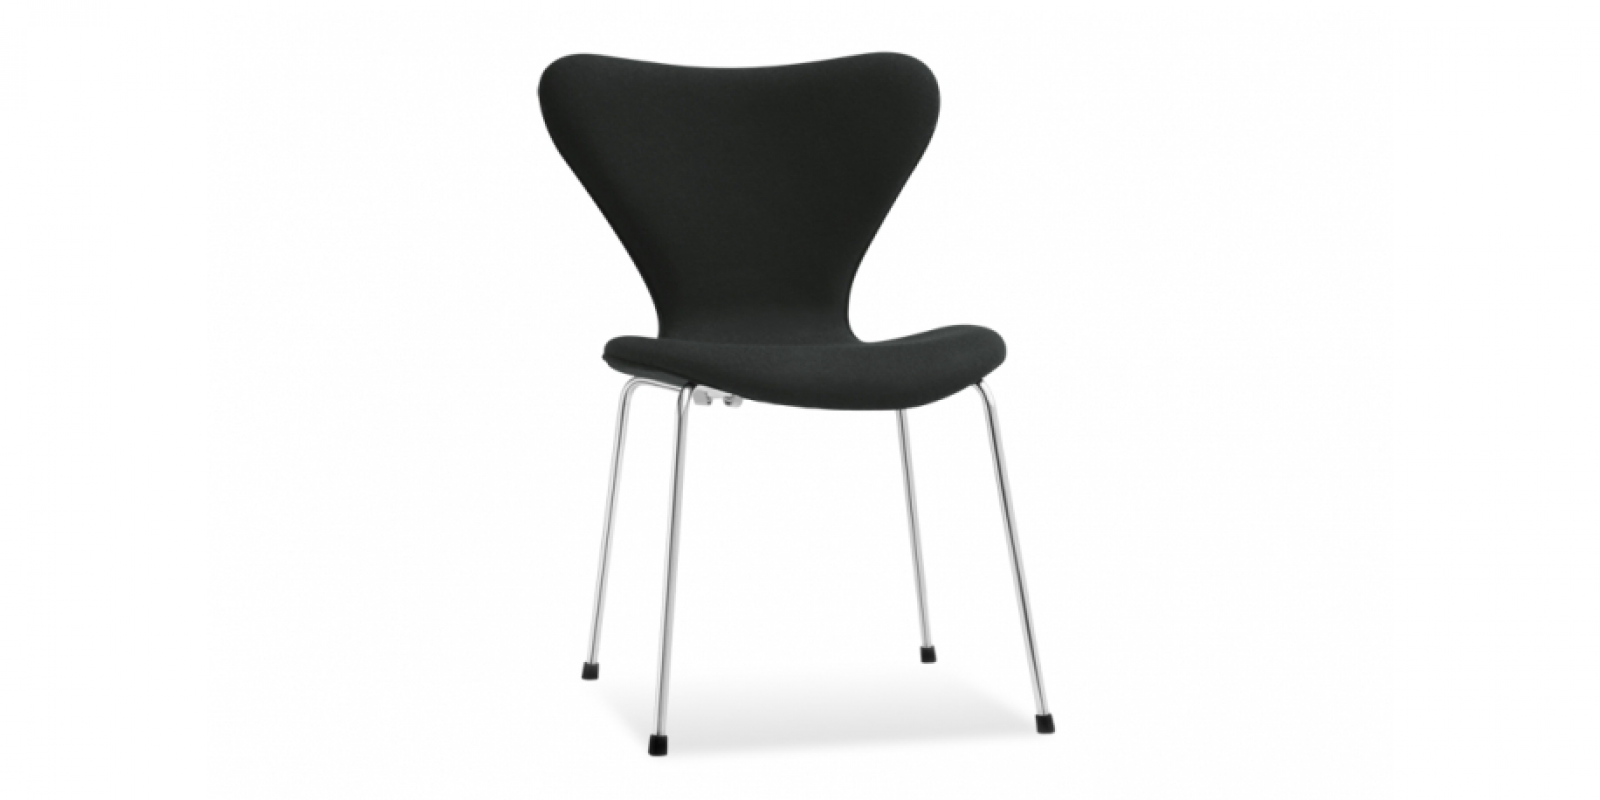 Mark an Impression on Others with Series 7 Chairs